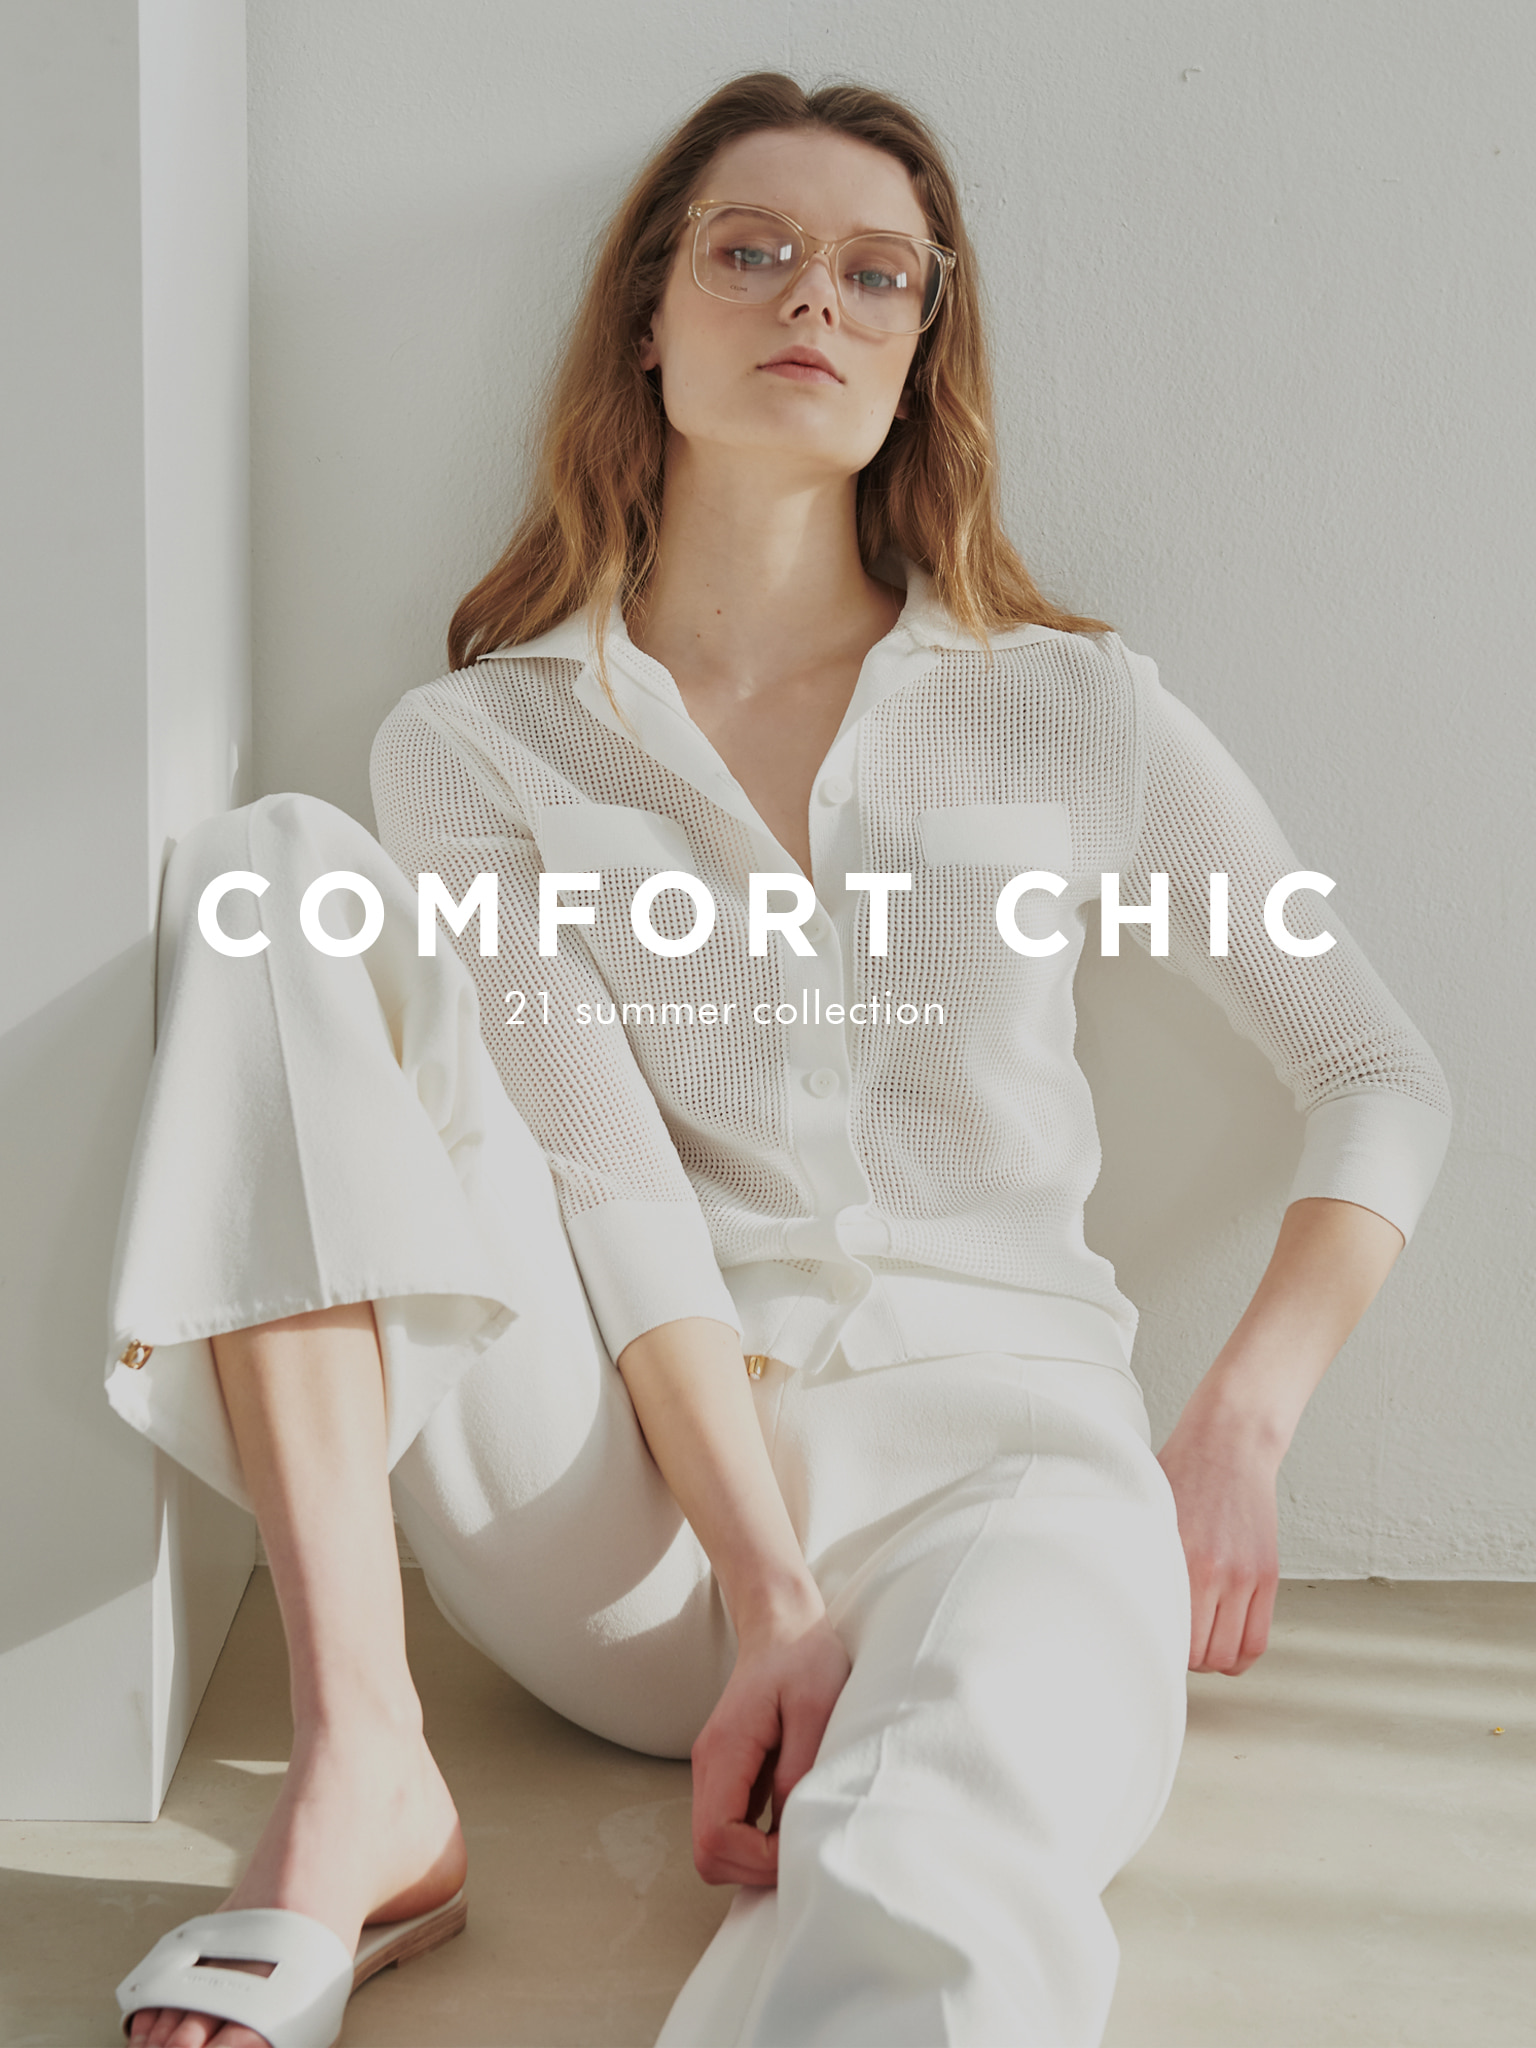 COMFORT CHIC Collection